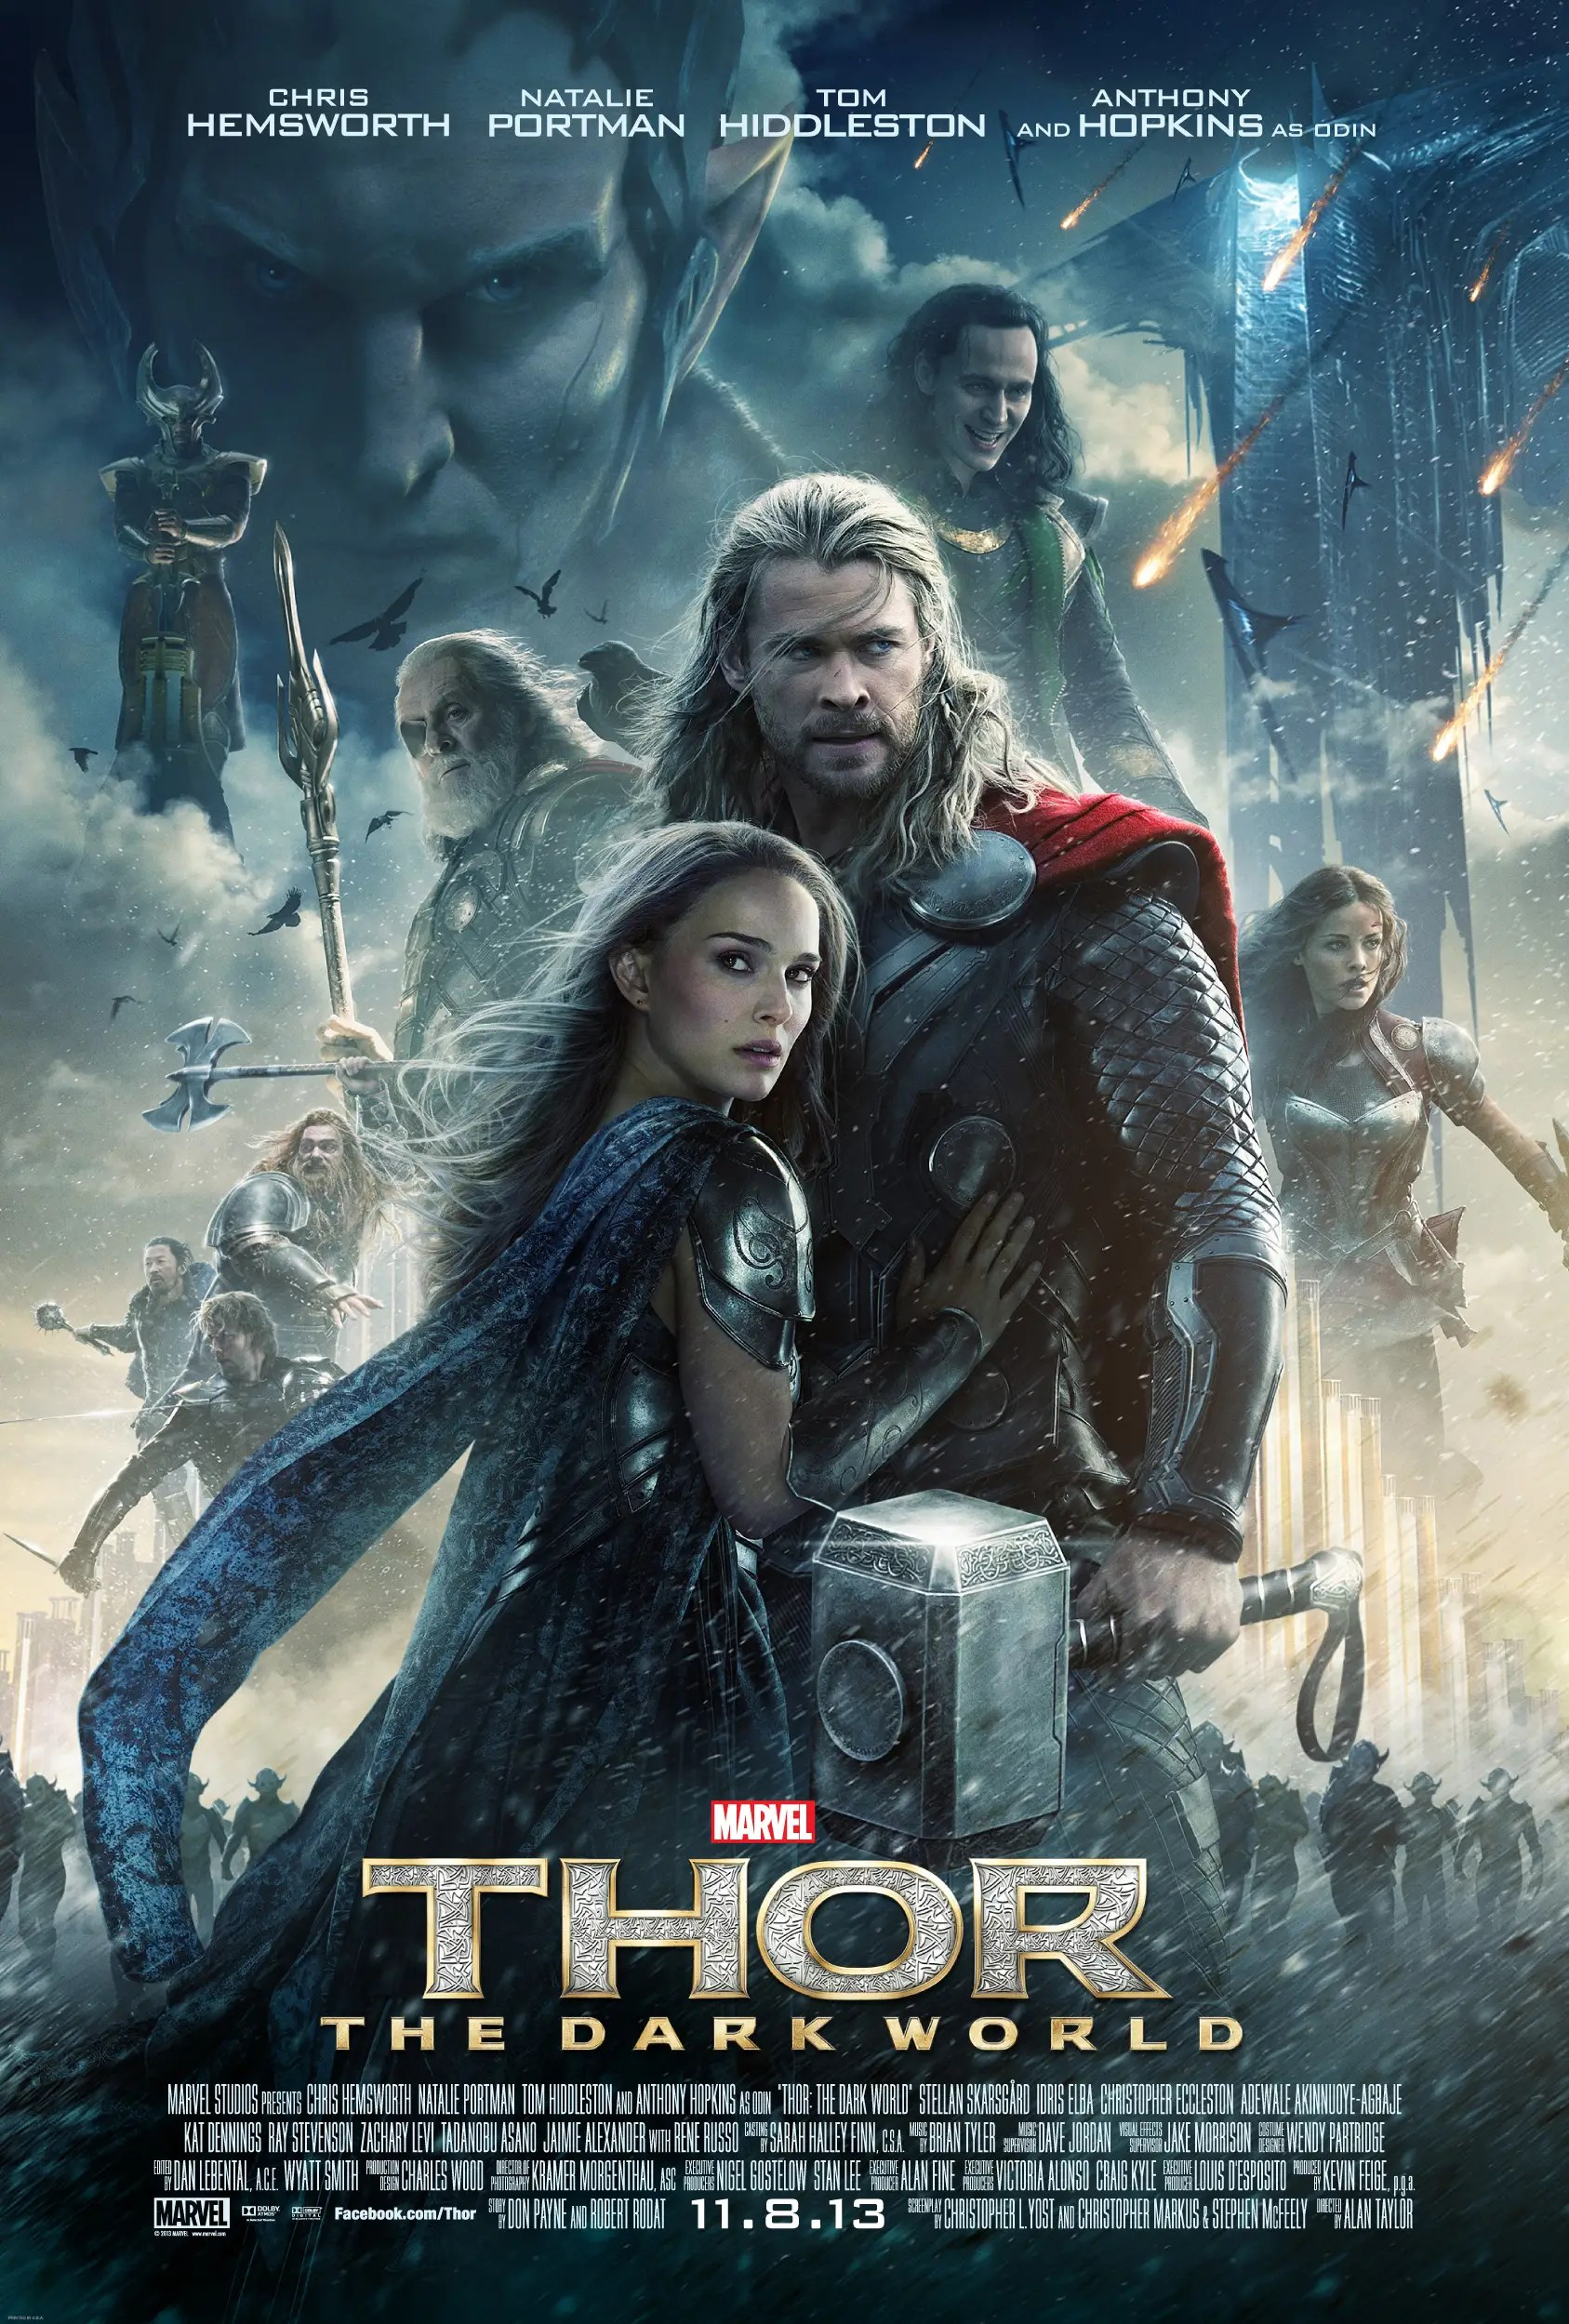 https://i0.wp.com/static4.businessinsider.com/image/51fefc05ecad04034500001e-960/thor%20the%20dark%20world%20poster.jpg